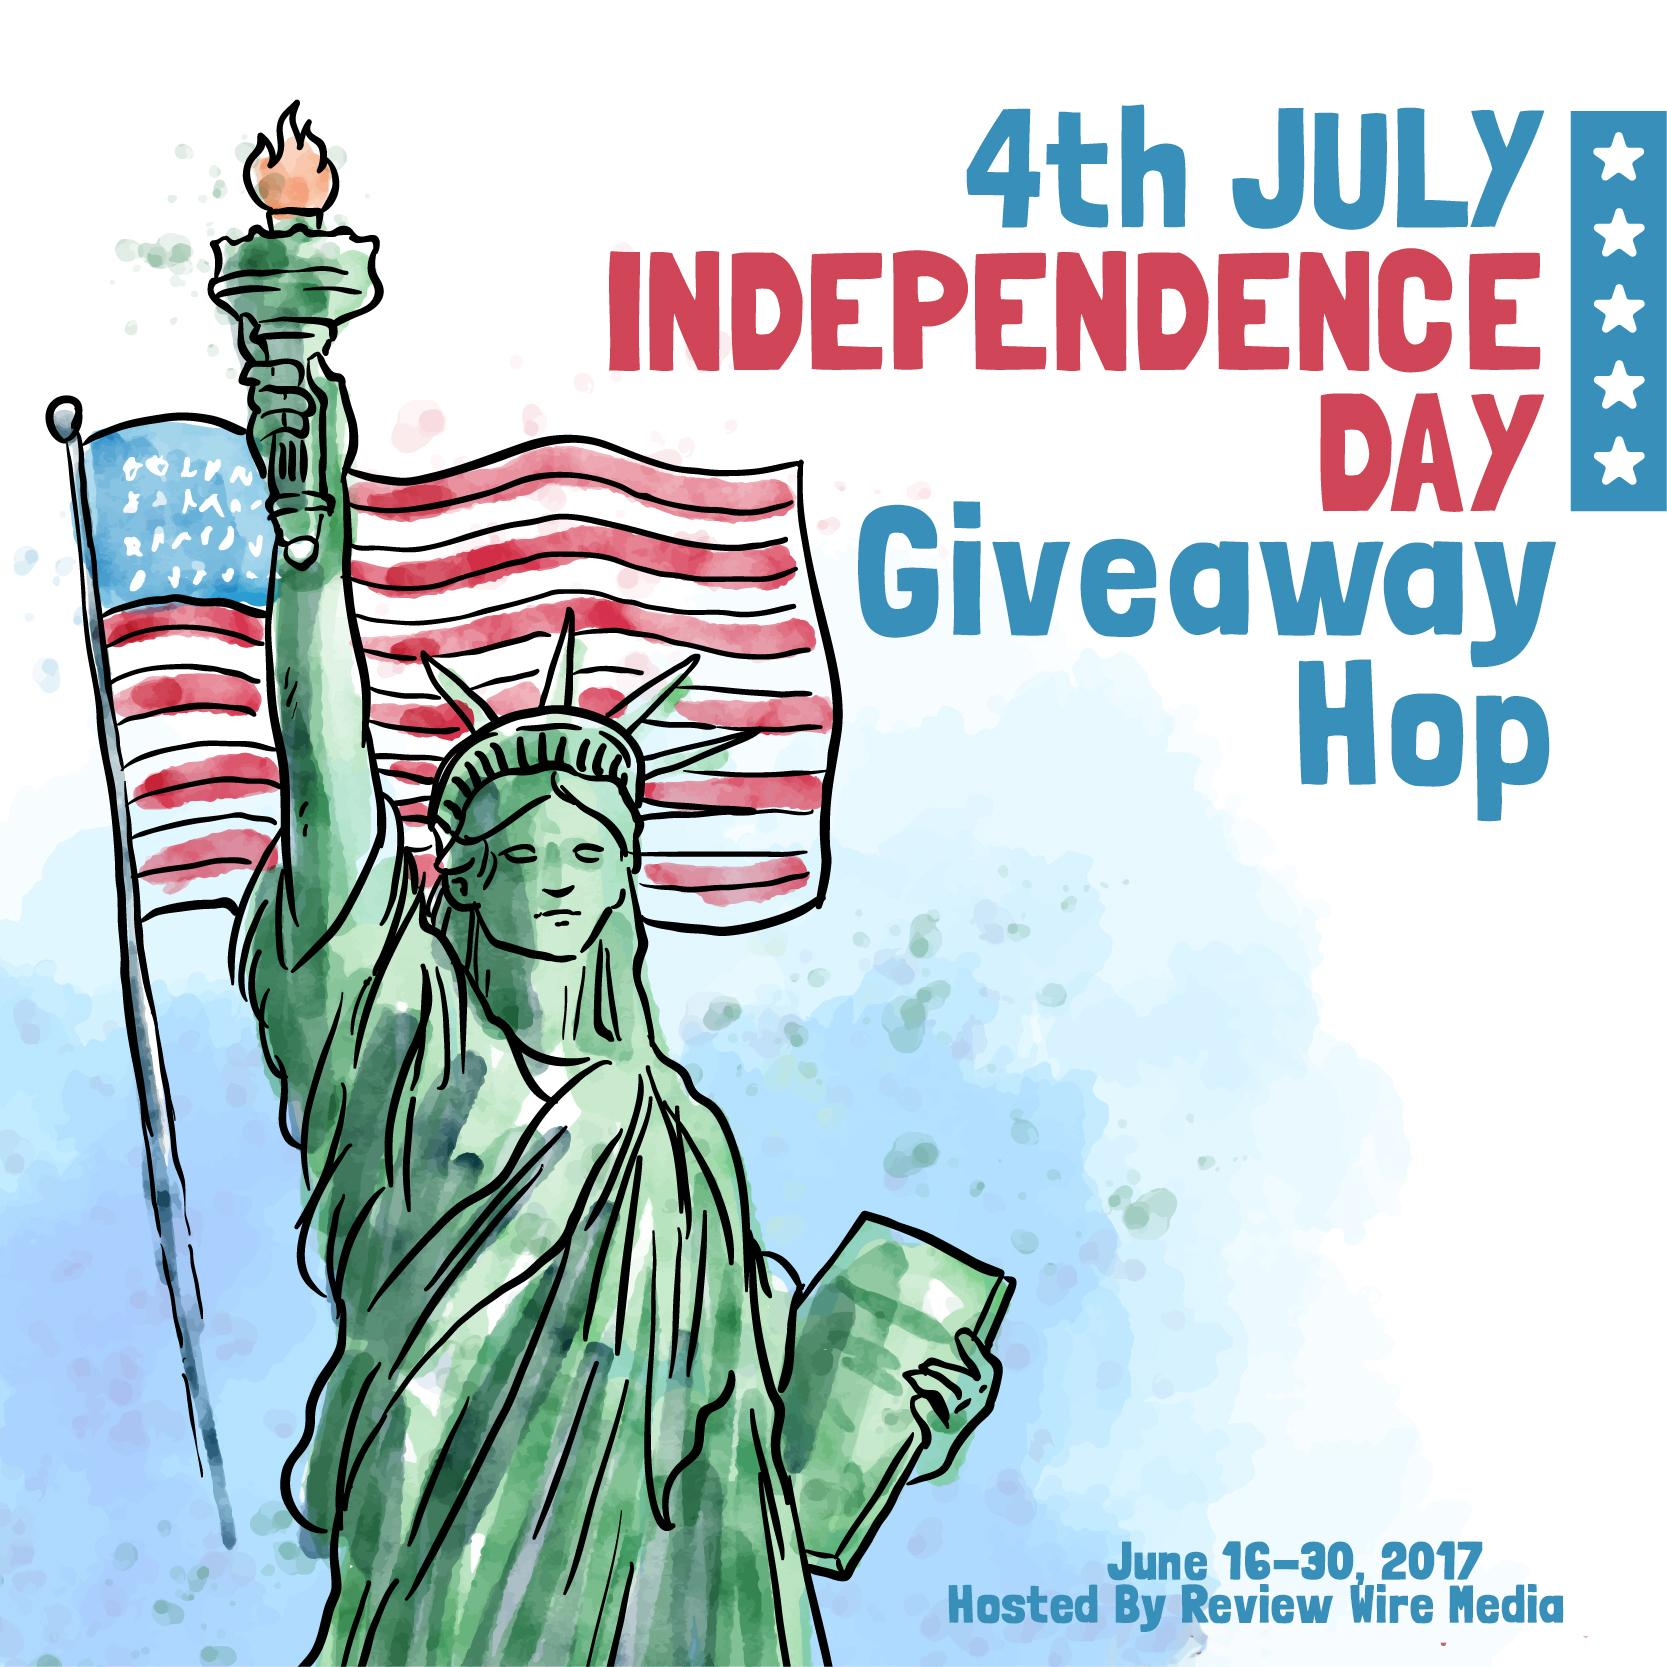 The Review Wire 4th July Hop June 16-30